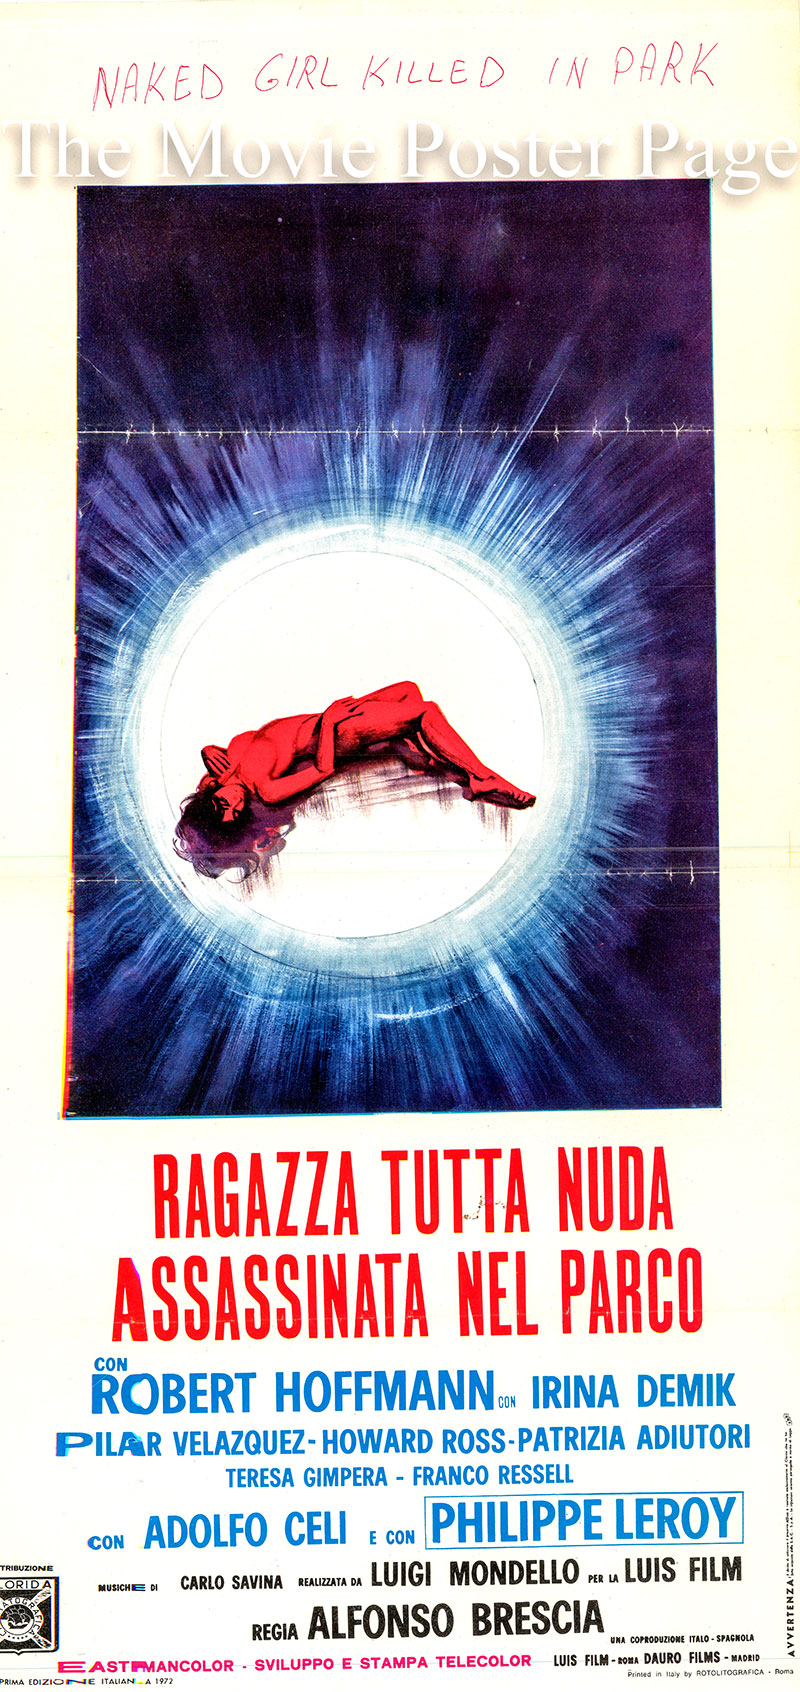 Pictured is an Italian locandina promotional poster for the 1972 Alfons Brescia film Ragazza Tutta Nuda Assassinate del Parco, starring Robert Hoffmann